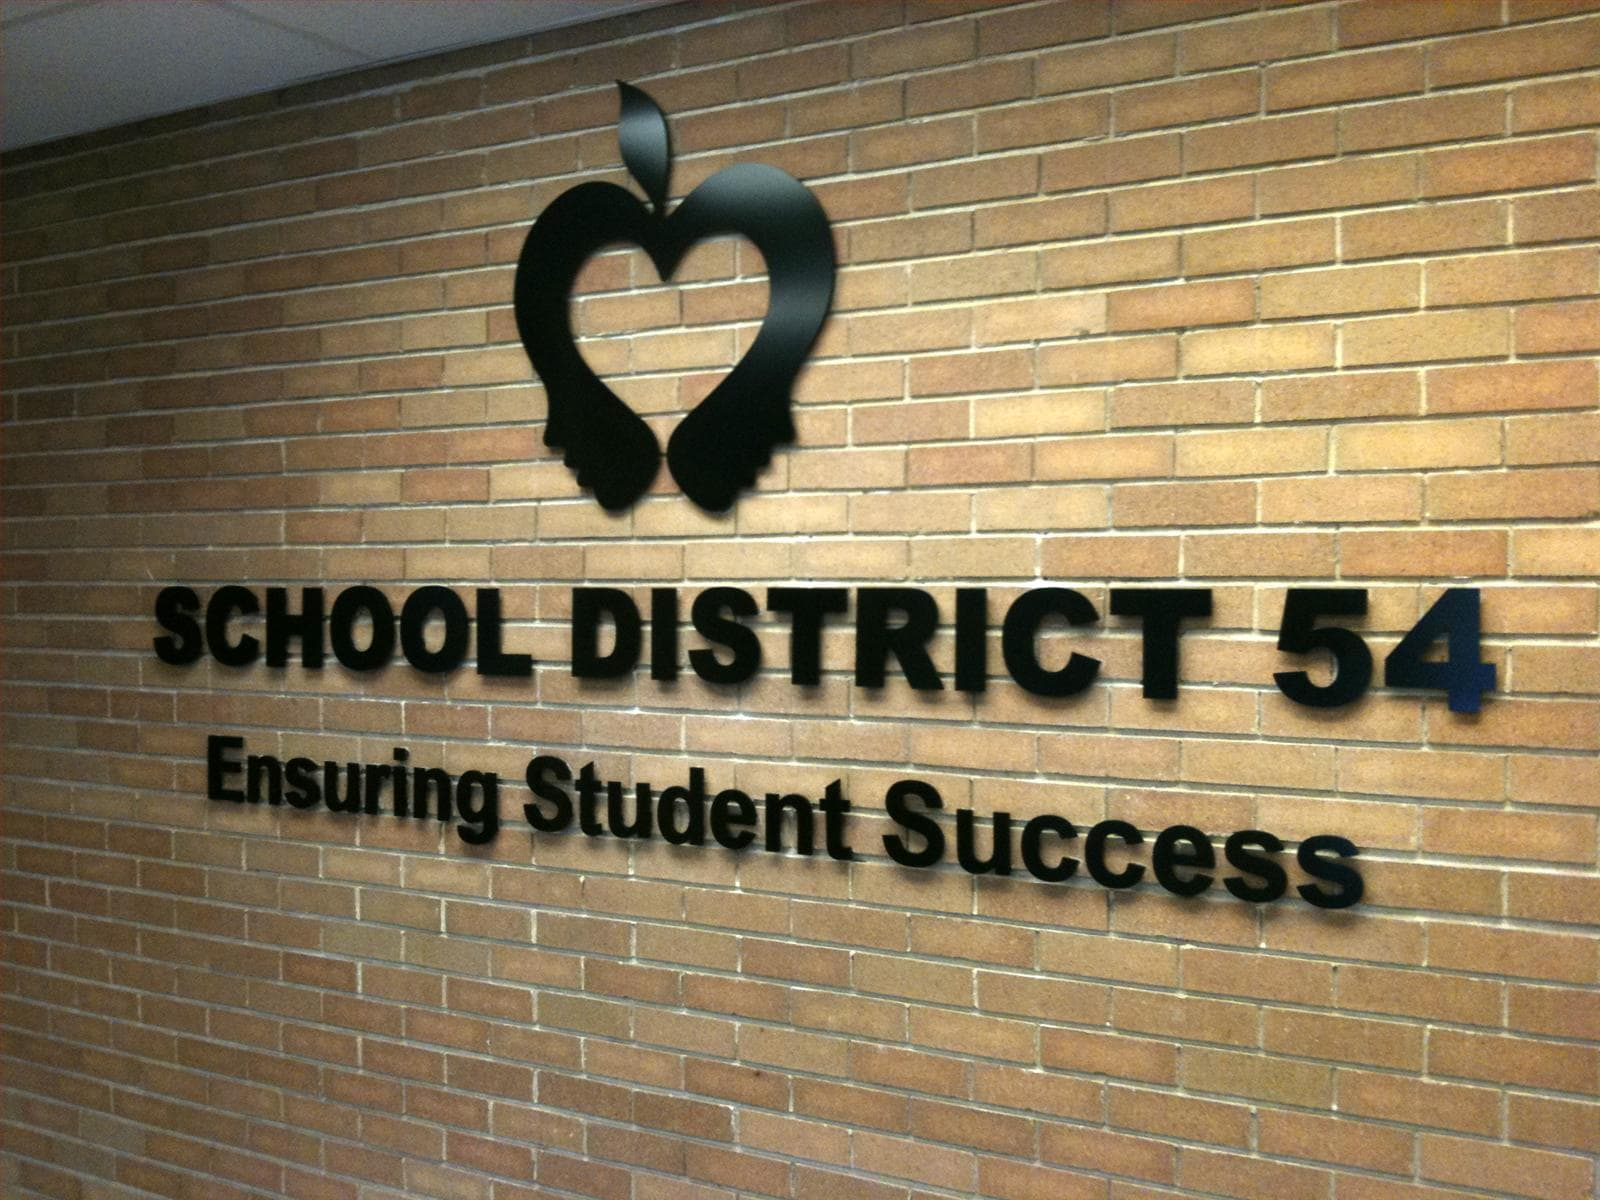 School District 54 Interior Wall Sign